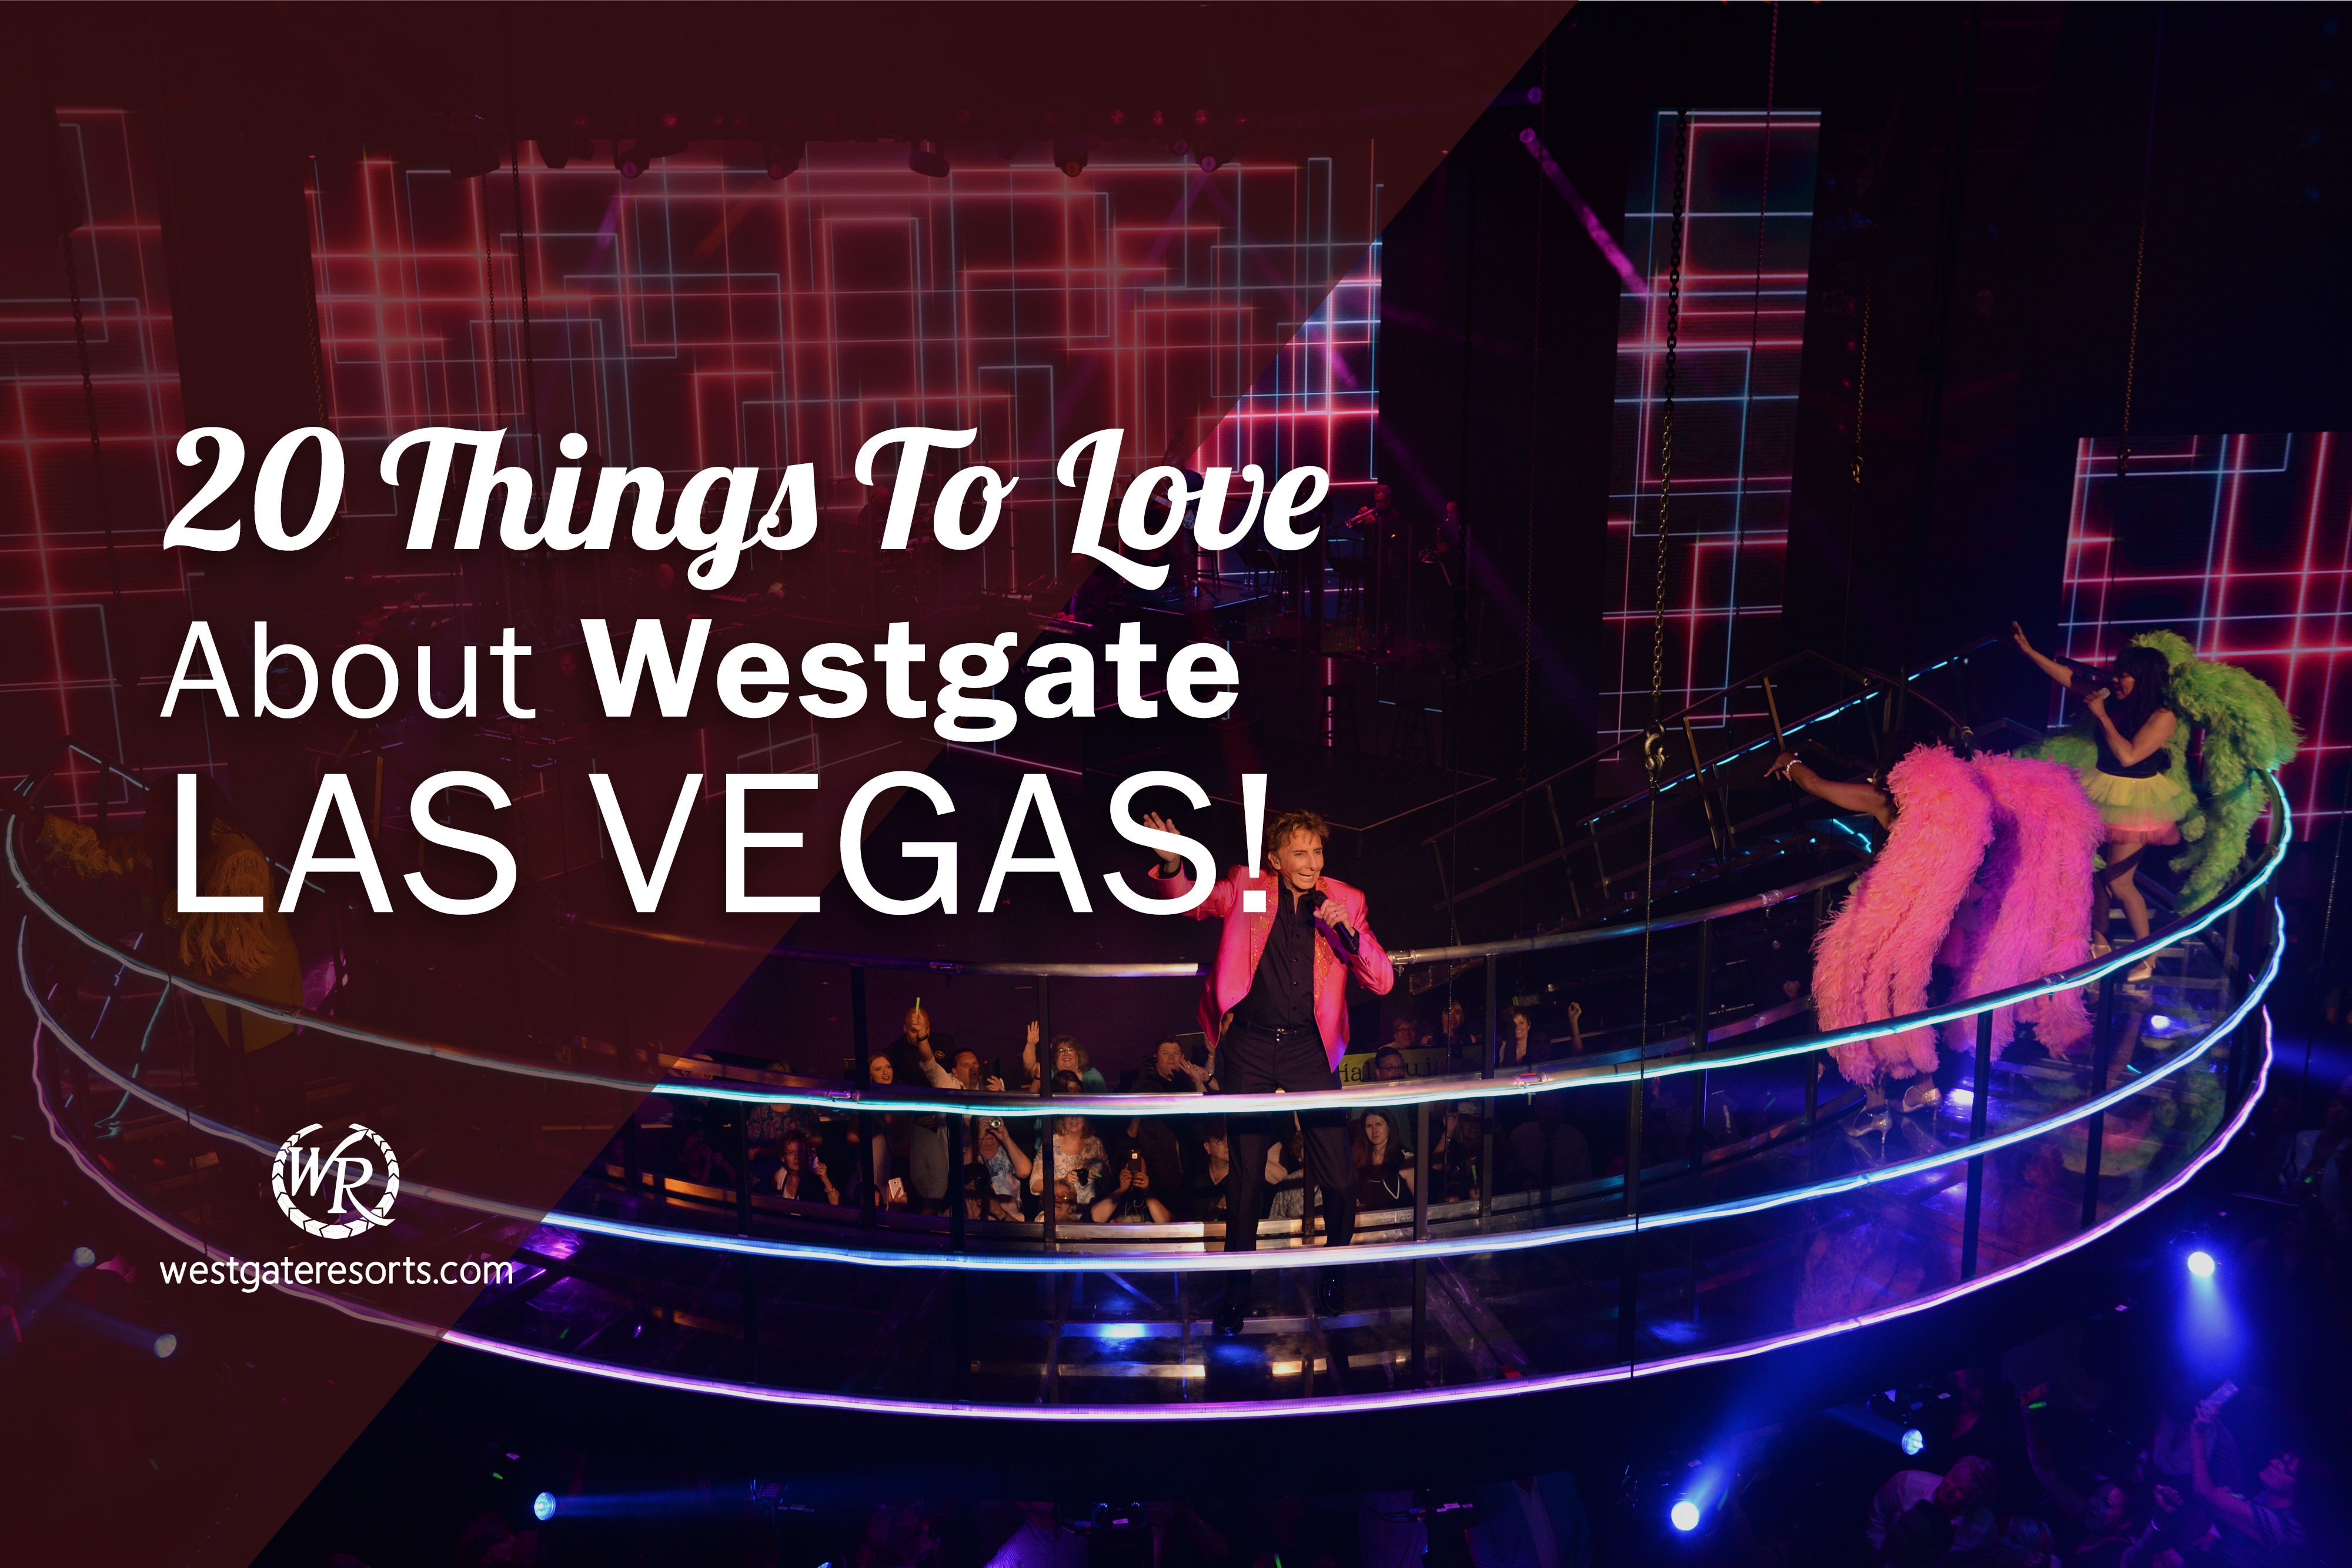 20 Things To Love About Westgate Las Vegas!